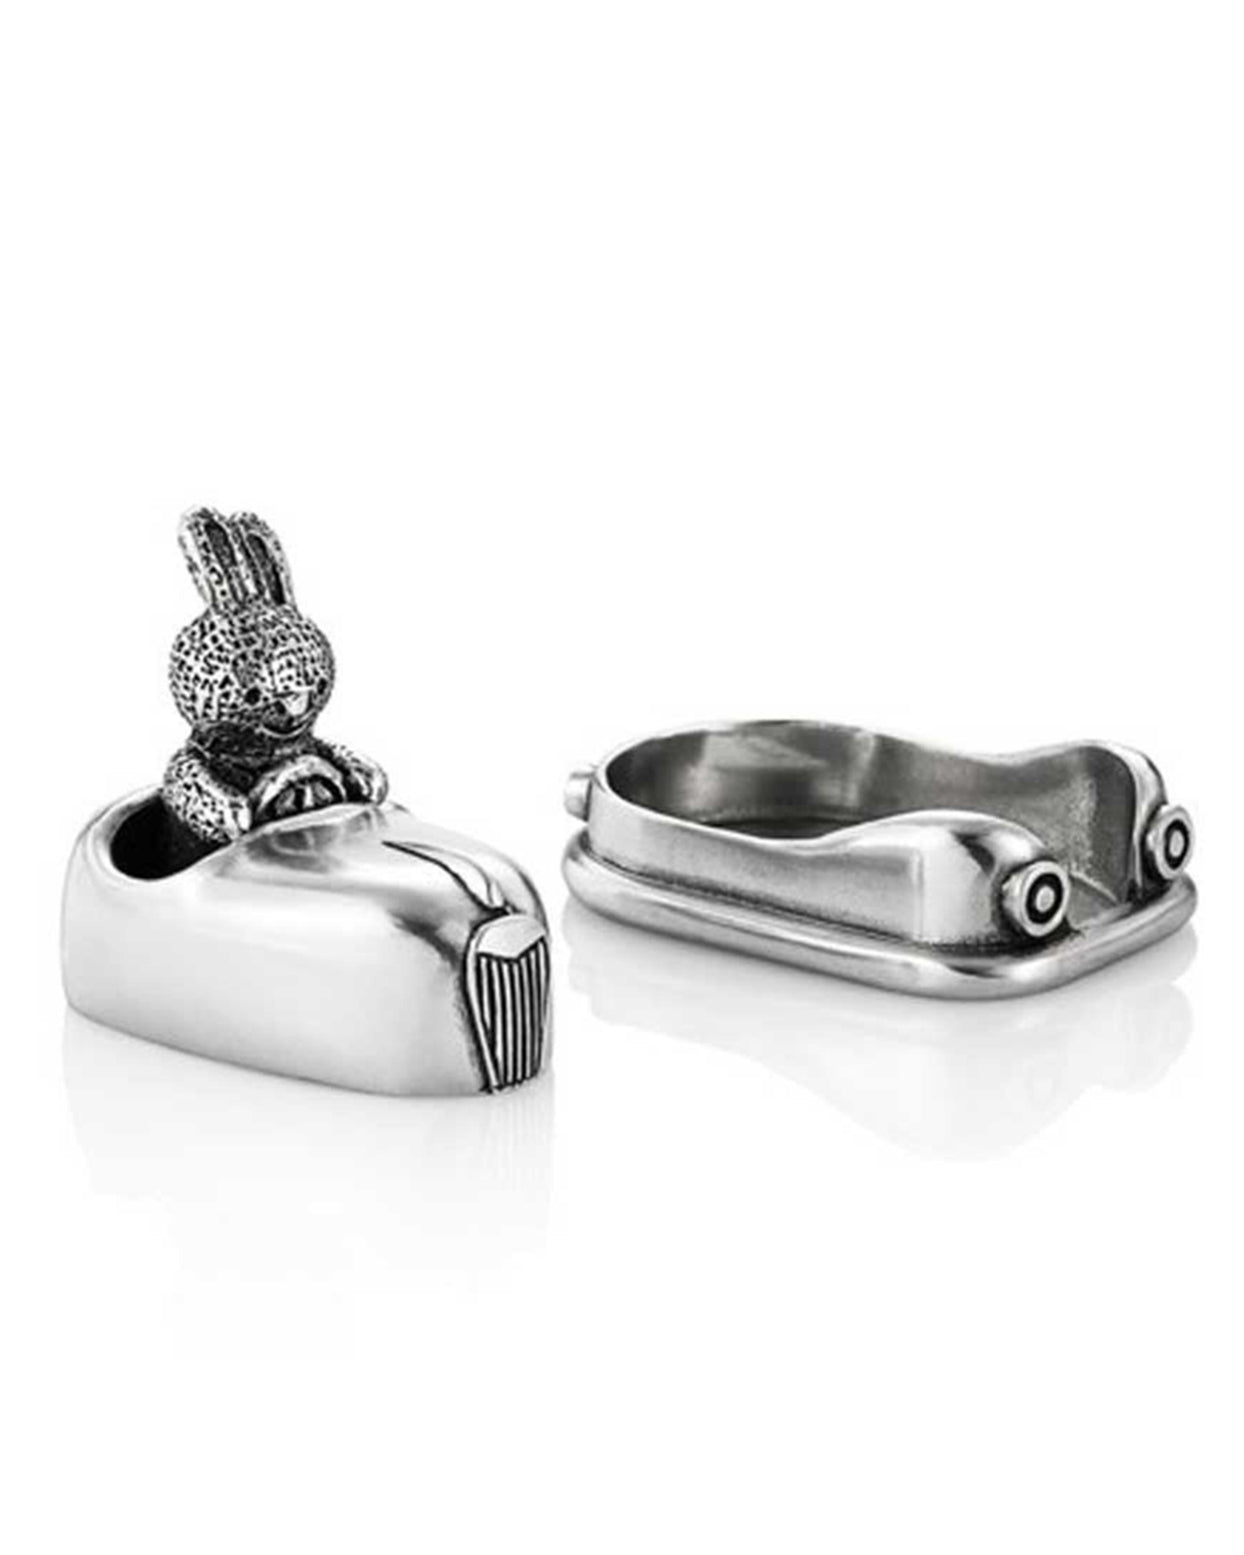 Royal Selangor Pewter Bunny Rabbit Dodgem Tooth Box